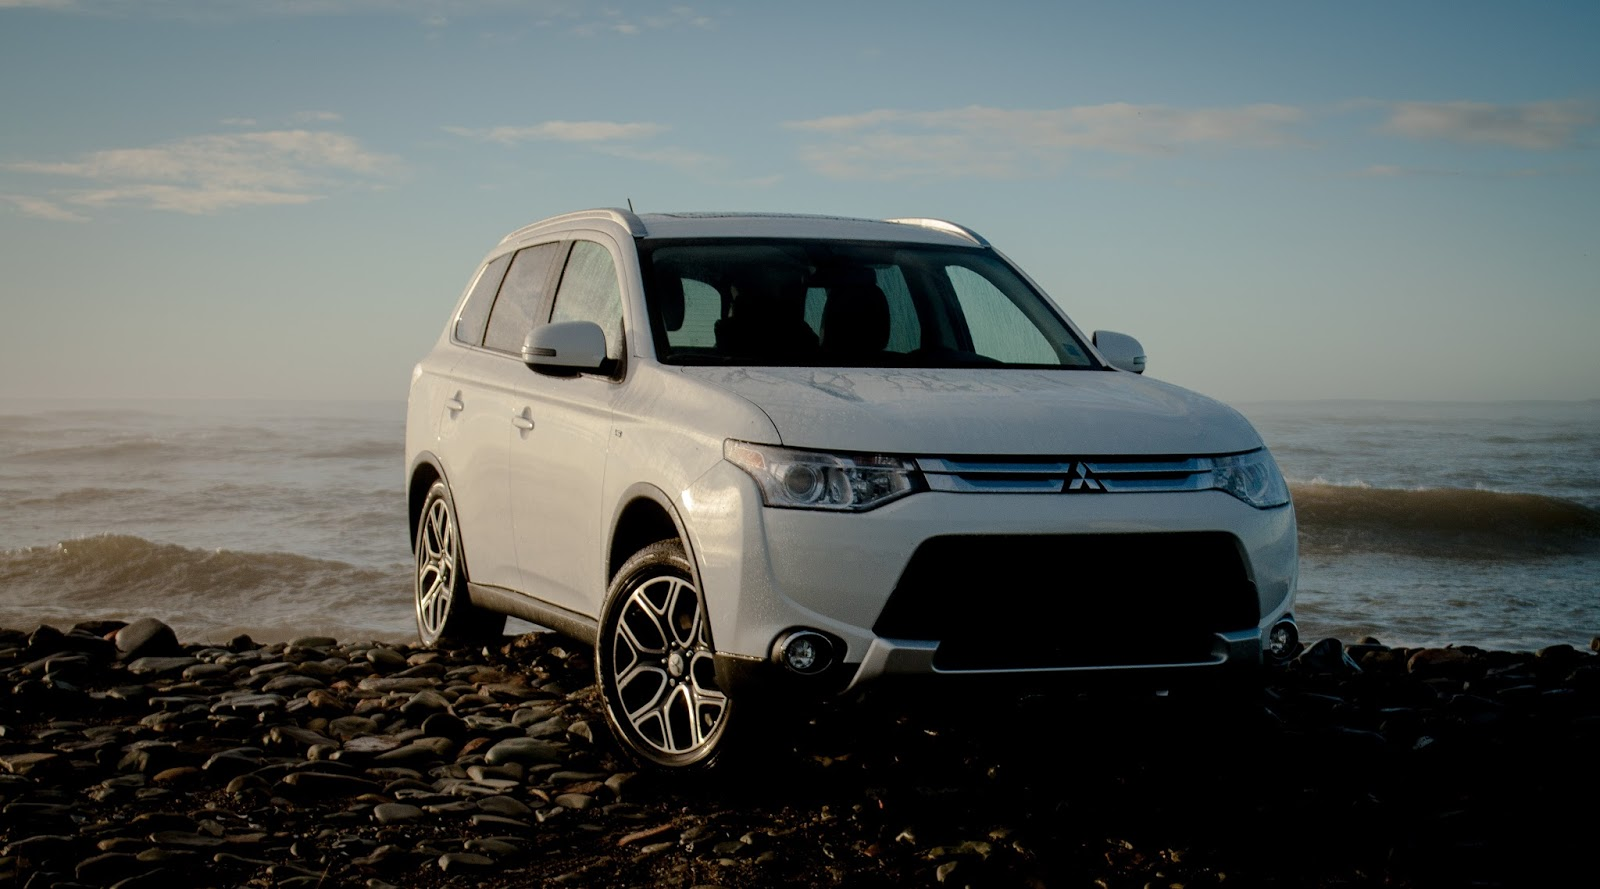 new outlander engine the se a is got mitsubishi to market on sport but make enough it strong